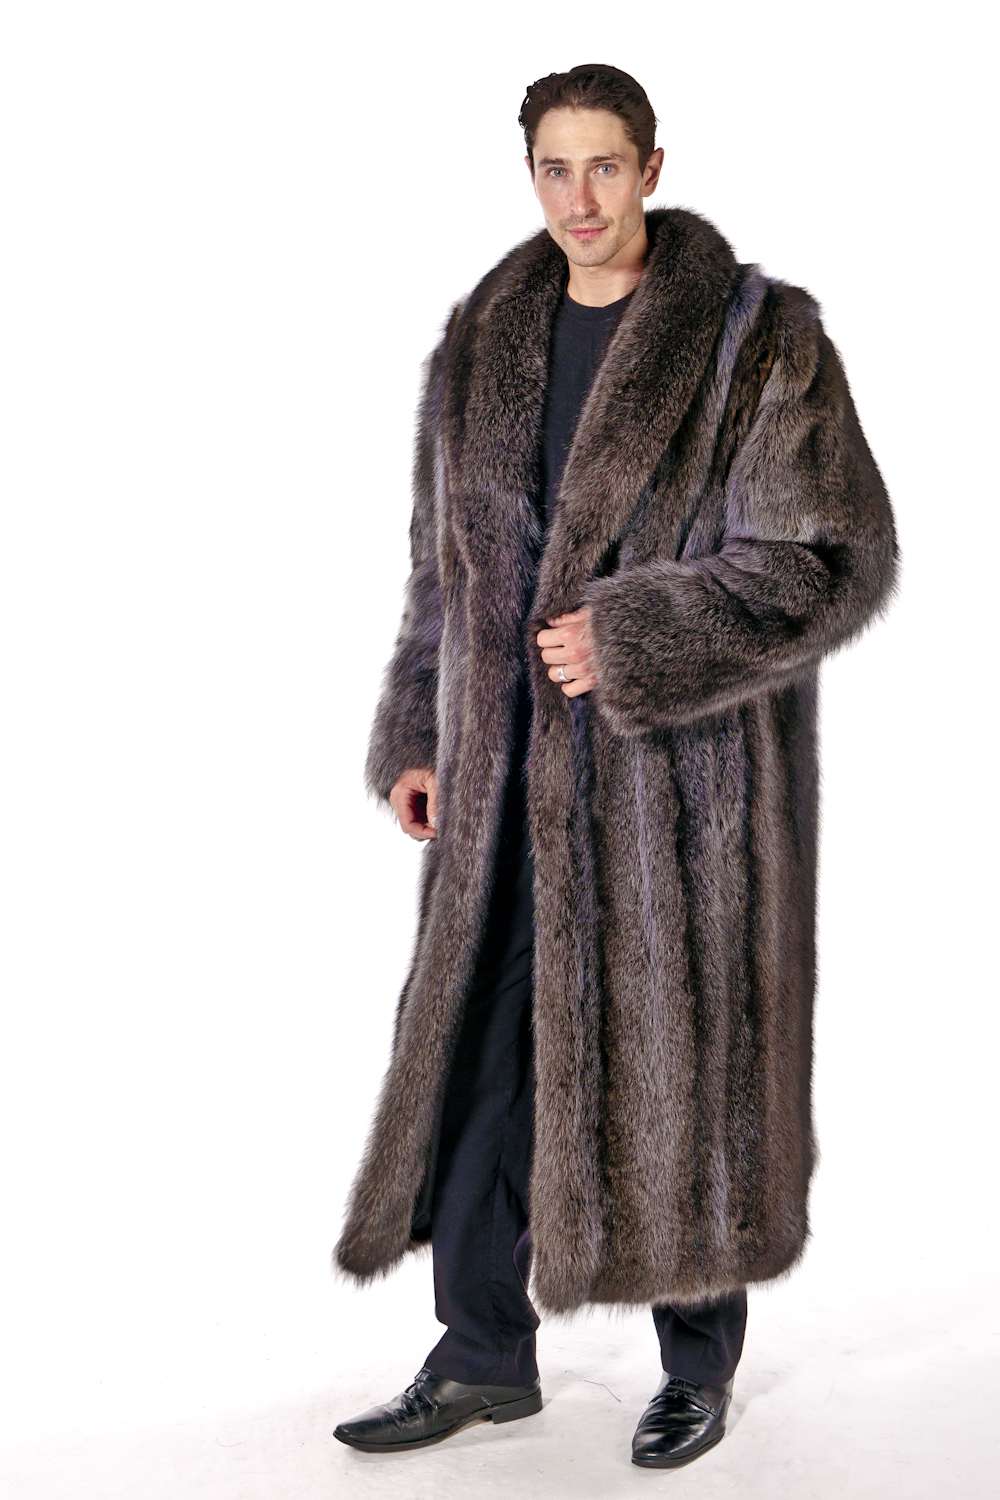 Browse our inventory of men's fur coats, jackets, accessories, and more. Get the latest in men's fur fashion without breaking the bank at Fur Clearinghouse.